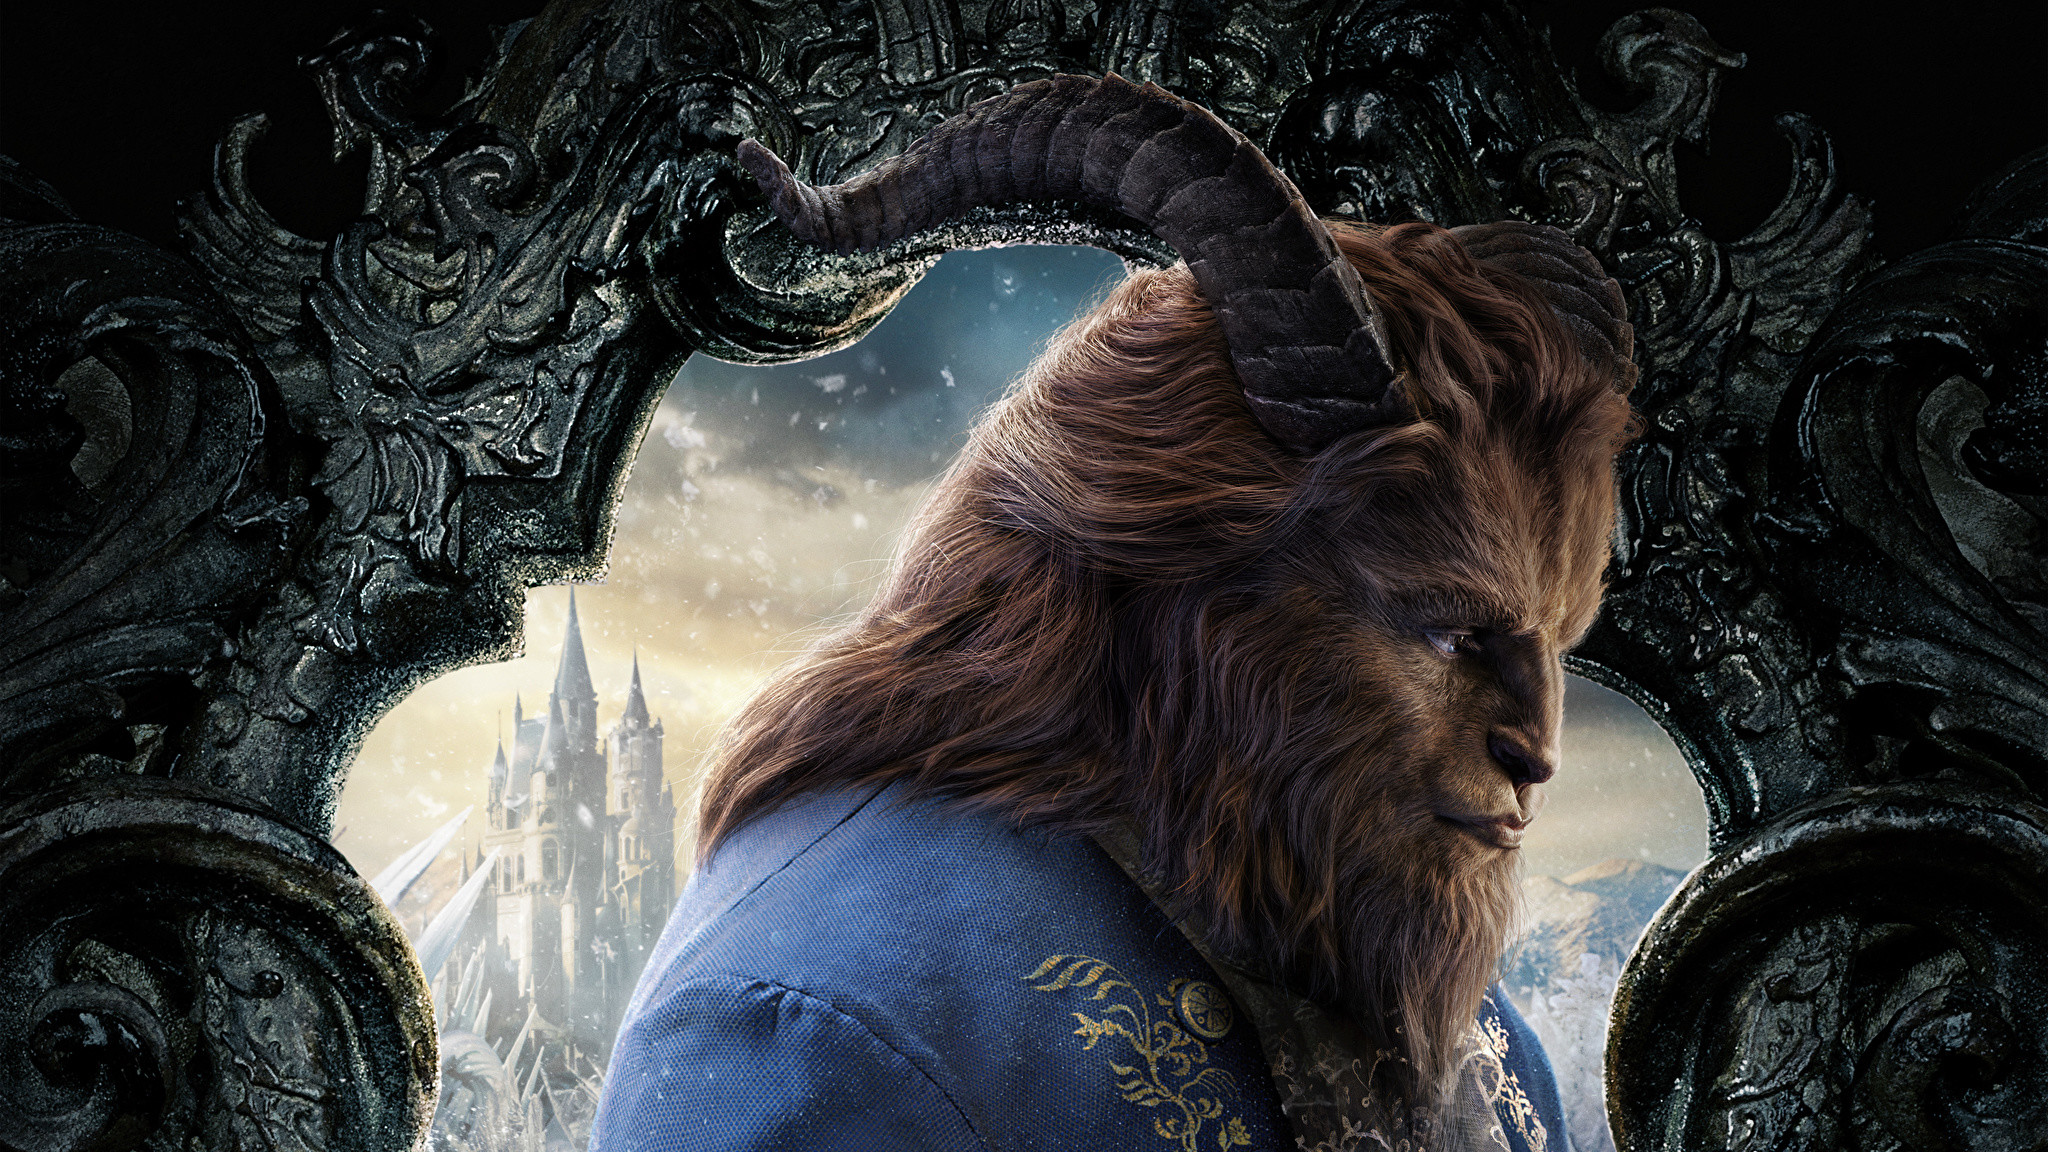 Images Beauty And The Beast 2017 Monsters Horns Movies 2048x1152 Download Hd Wallpaper Wallpapertip